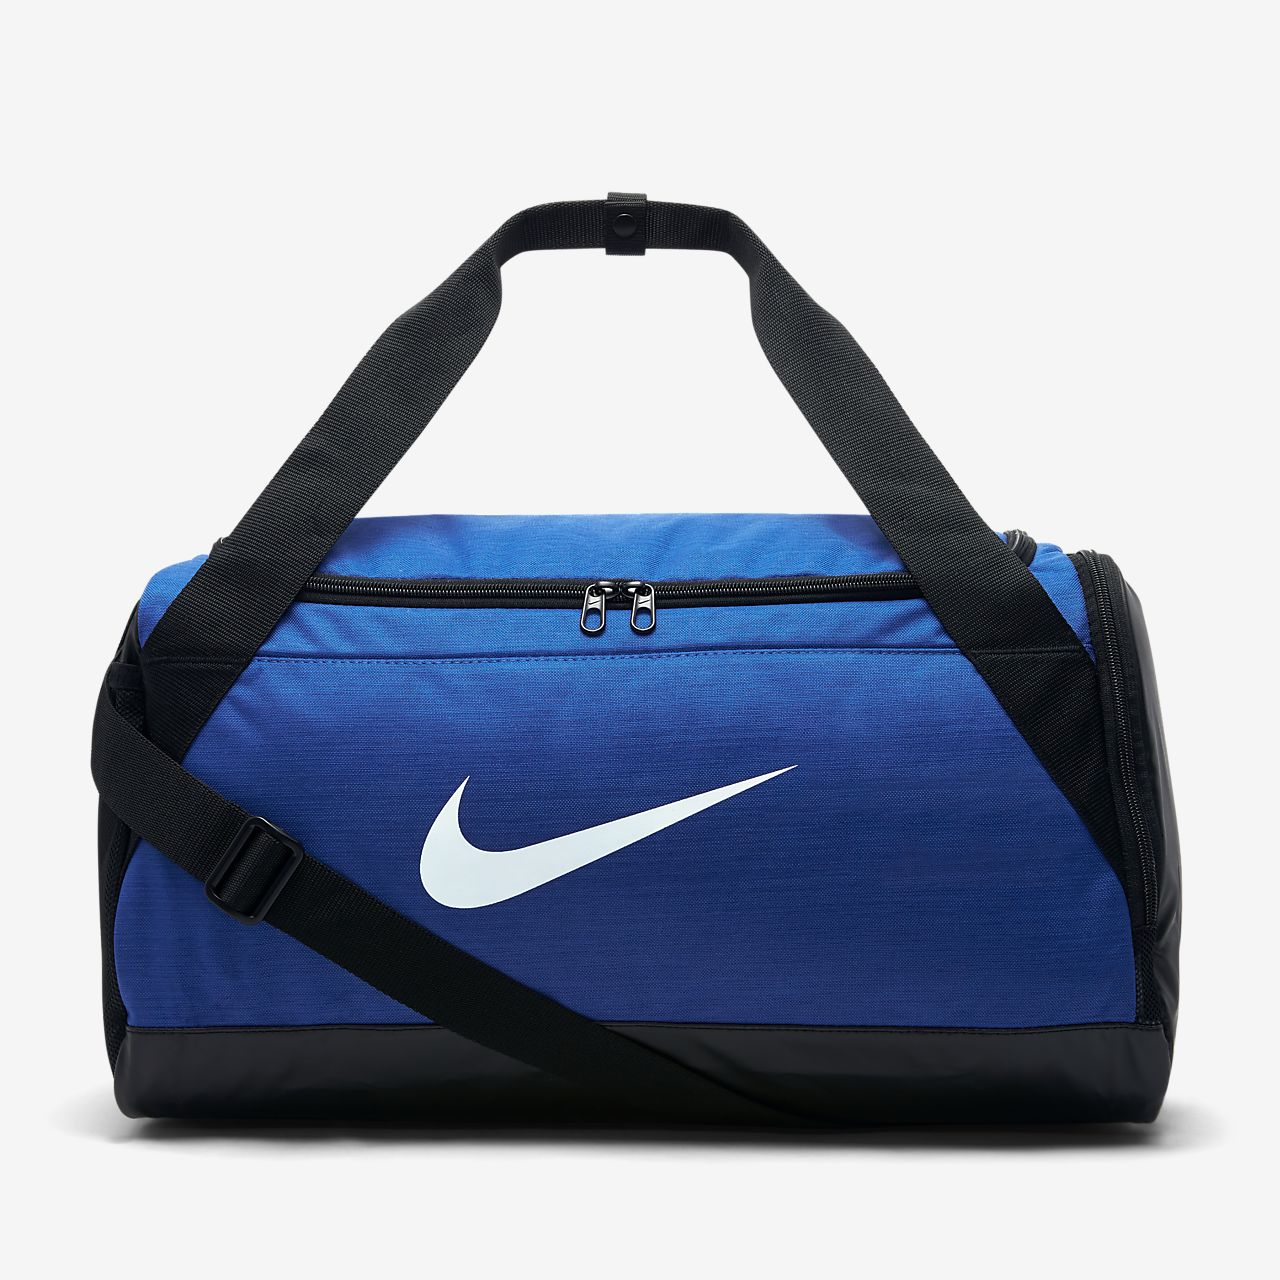 b89071e919a8 Nike Brasilia (Small) Training Duffel Bag. Nike.com AU